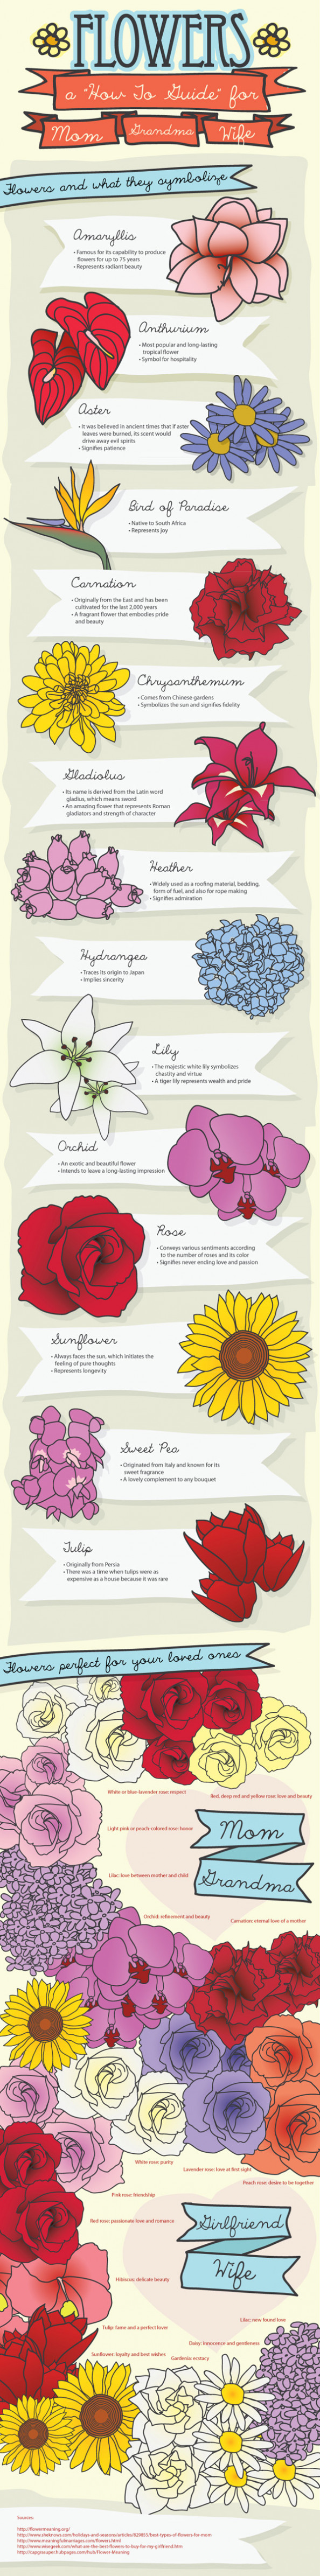 Choosing the Right Flower for the Right Occasion Infographic